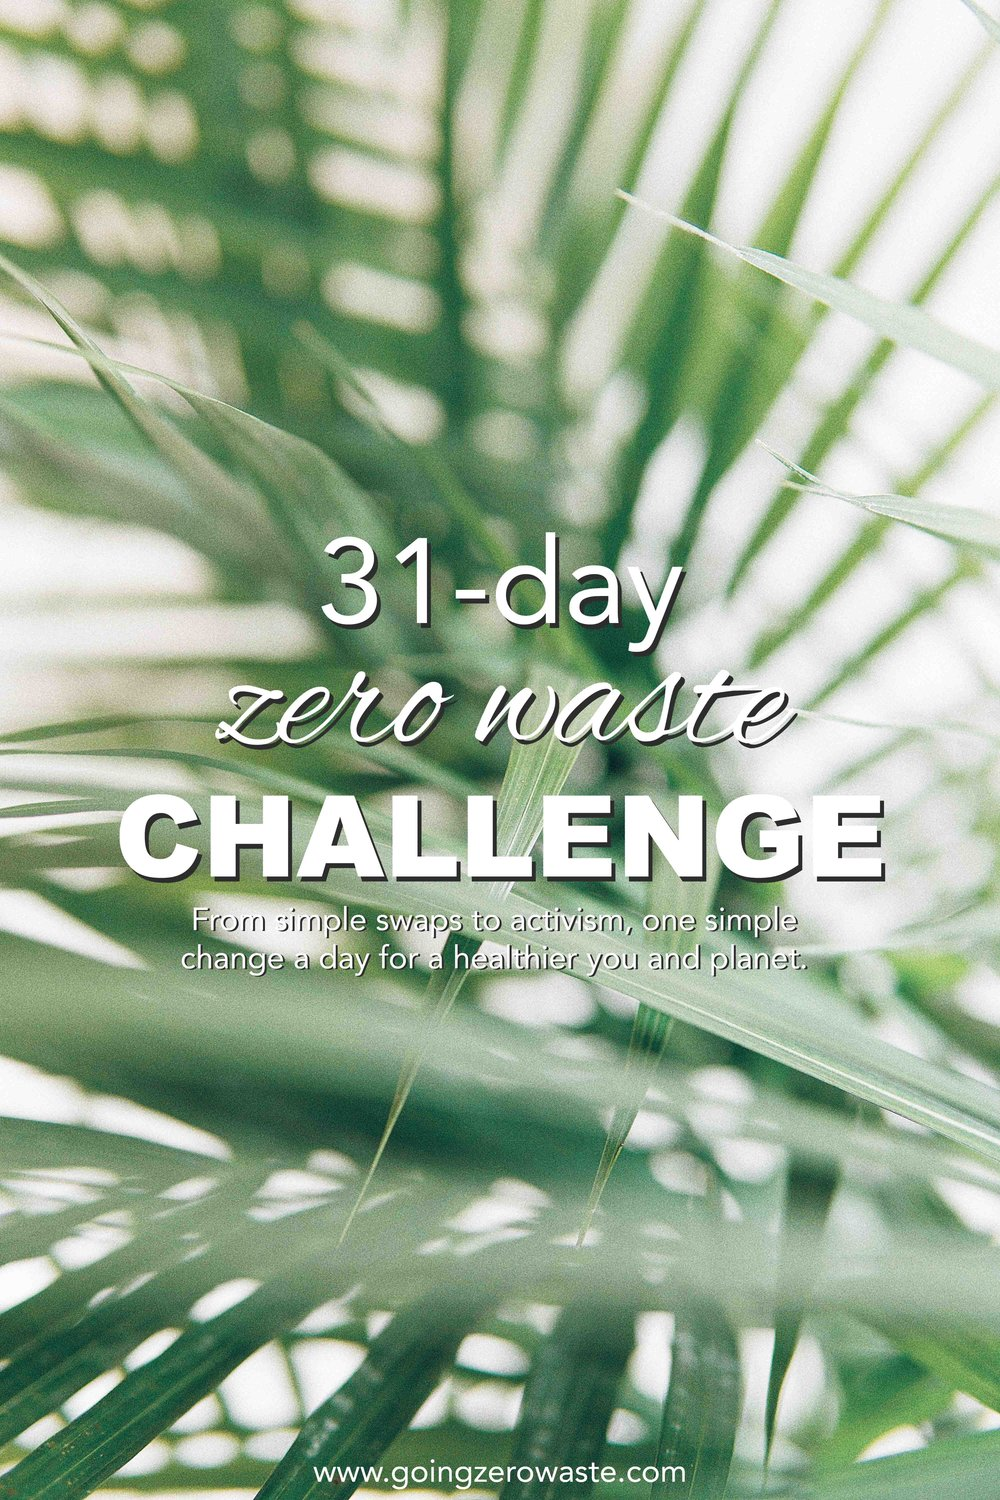 31 Day Zero Waste Challenge from www.goingzerowaste.com. From simple swaps to activism get one challenge every day to help you live a healthier life for both yourself and the planet! #zerowaste #ecofriendly #30daychallenge